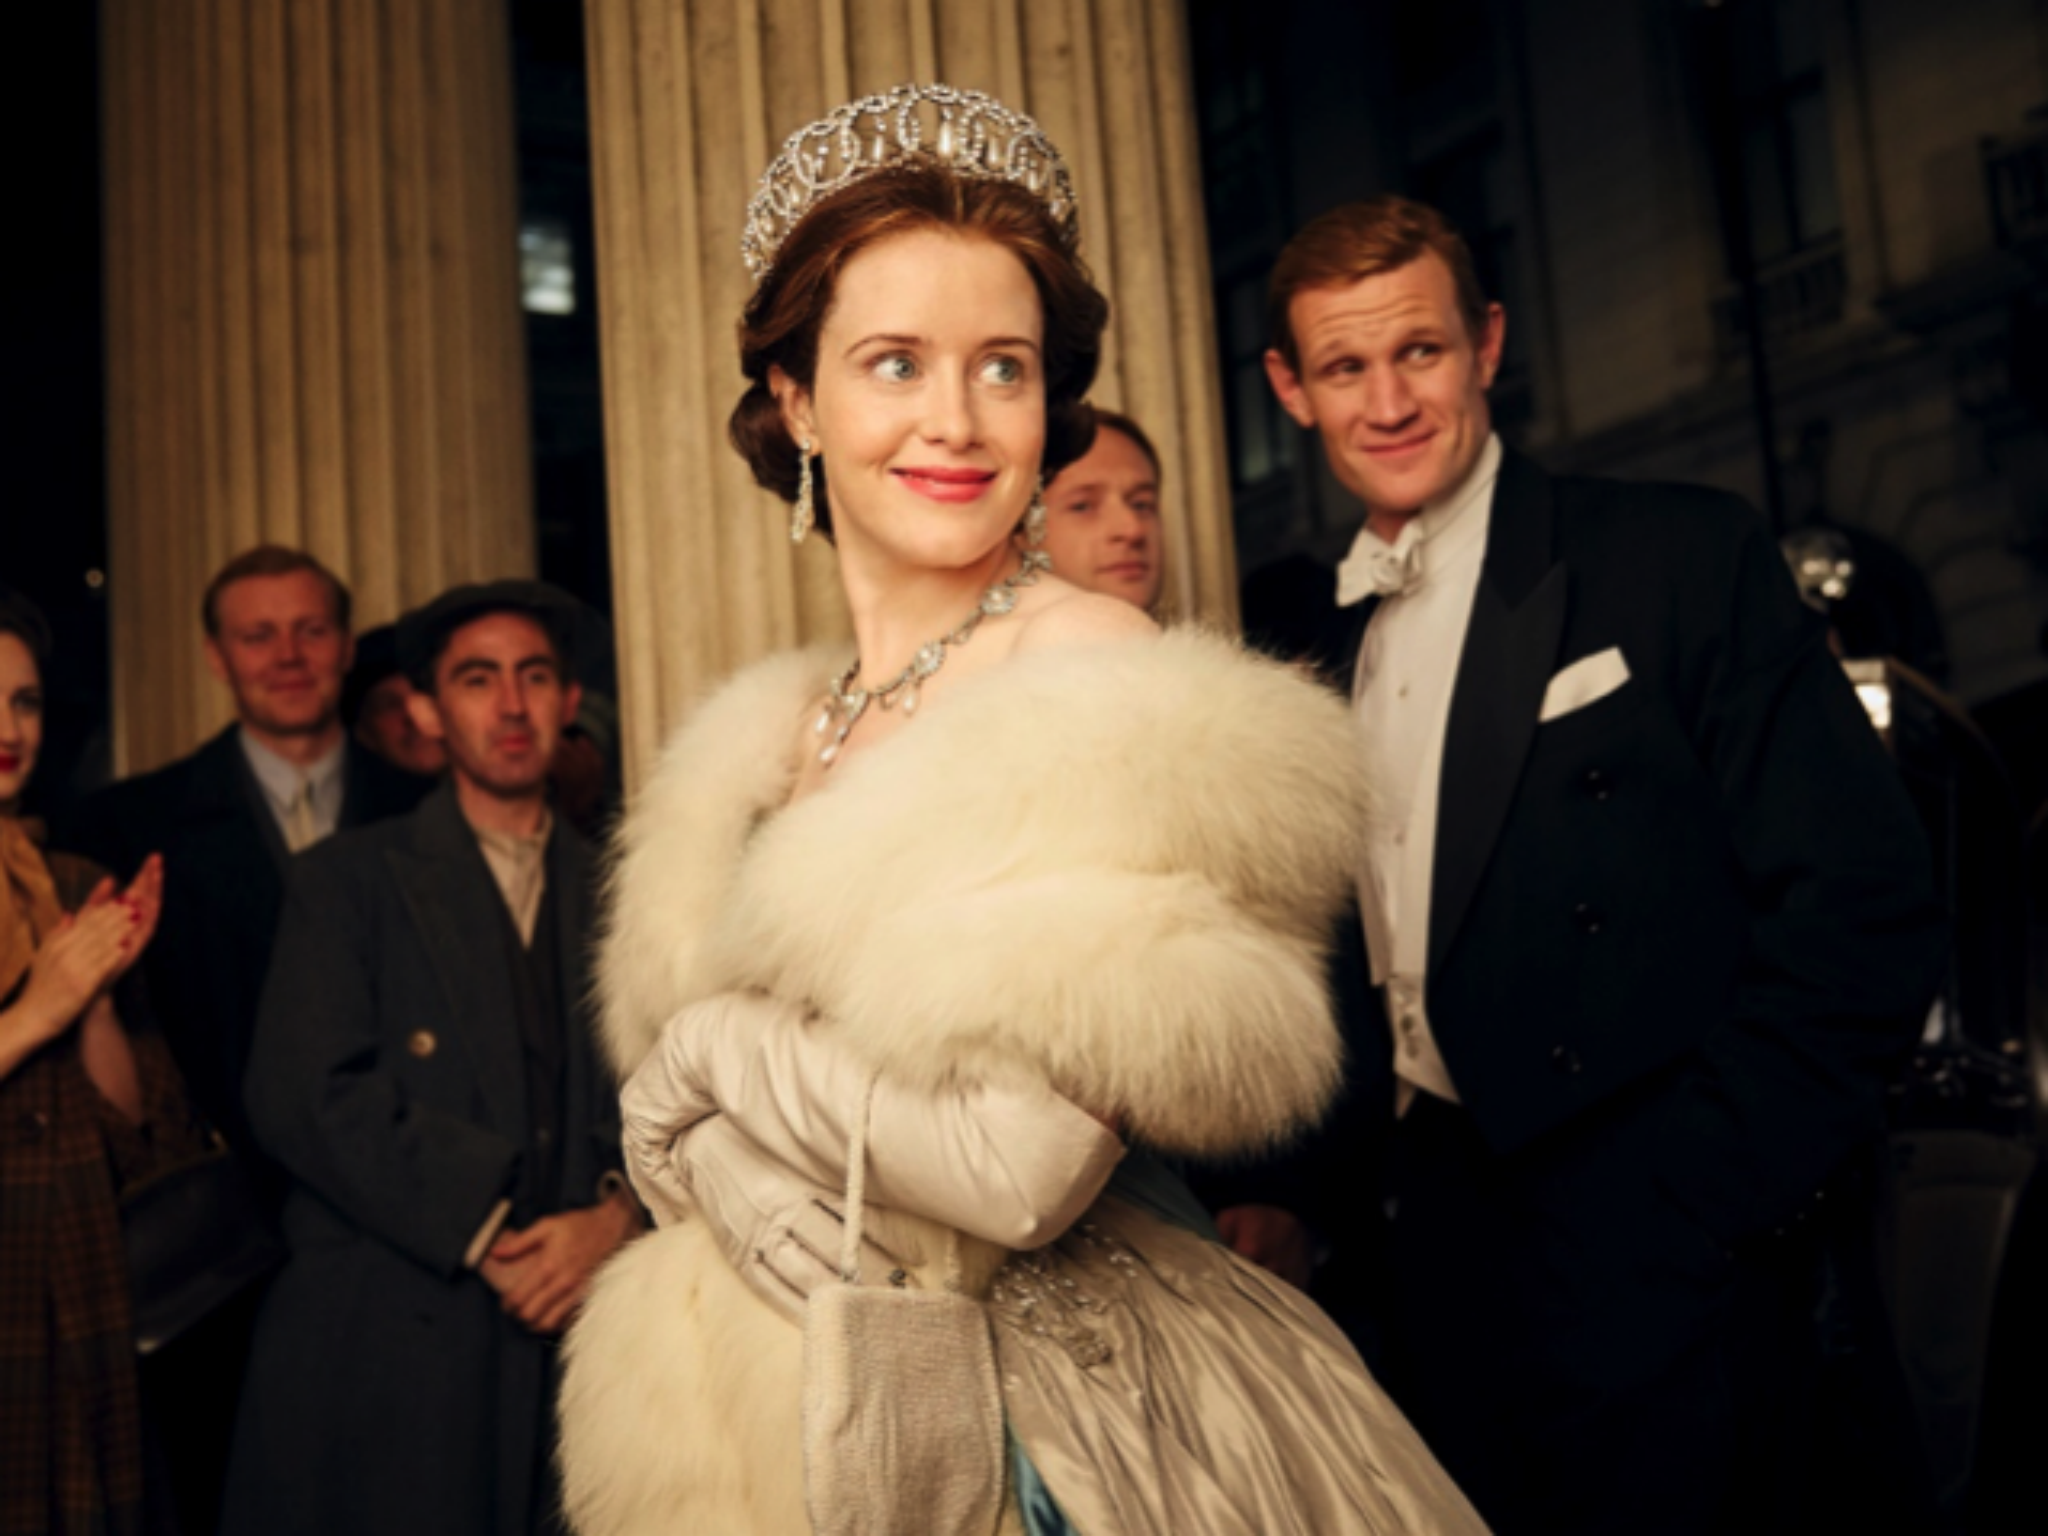 The Crown: The best costume from the award-winning royal Netflix drama